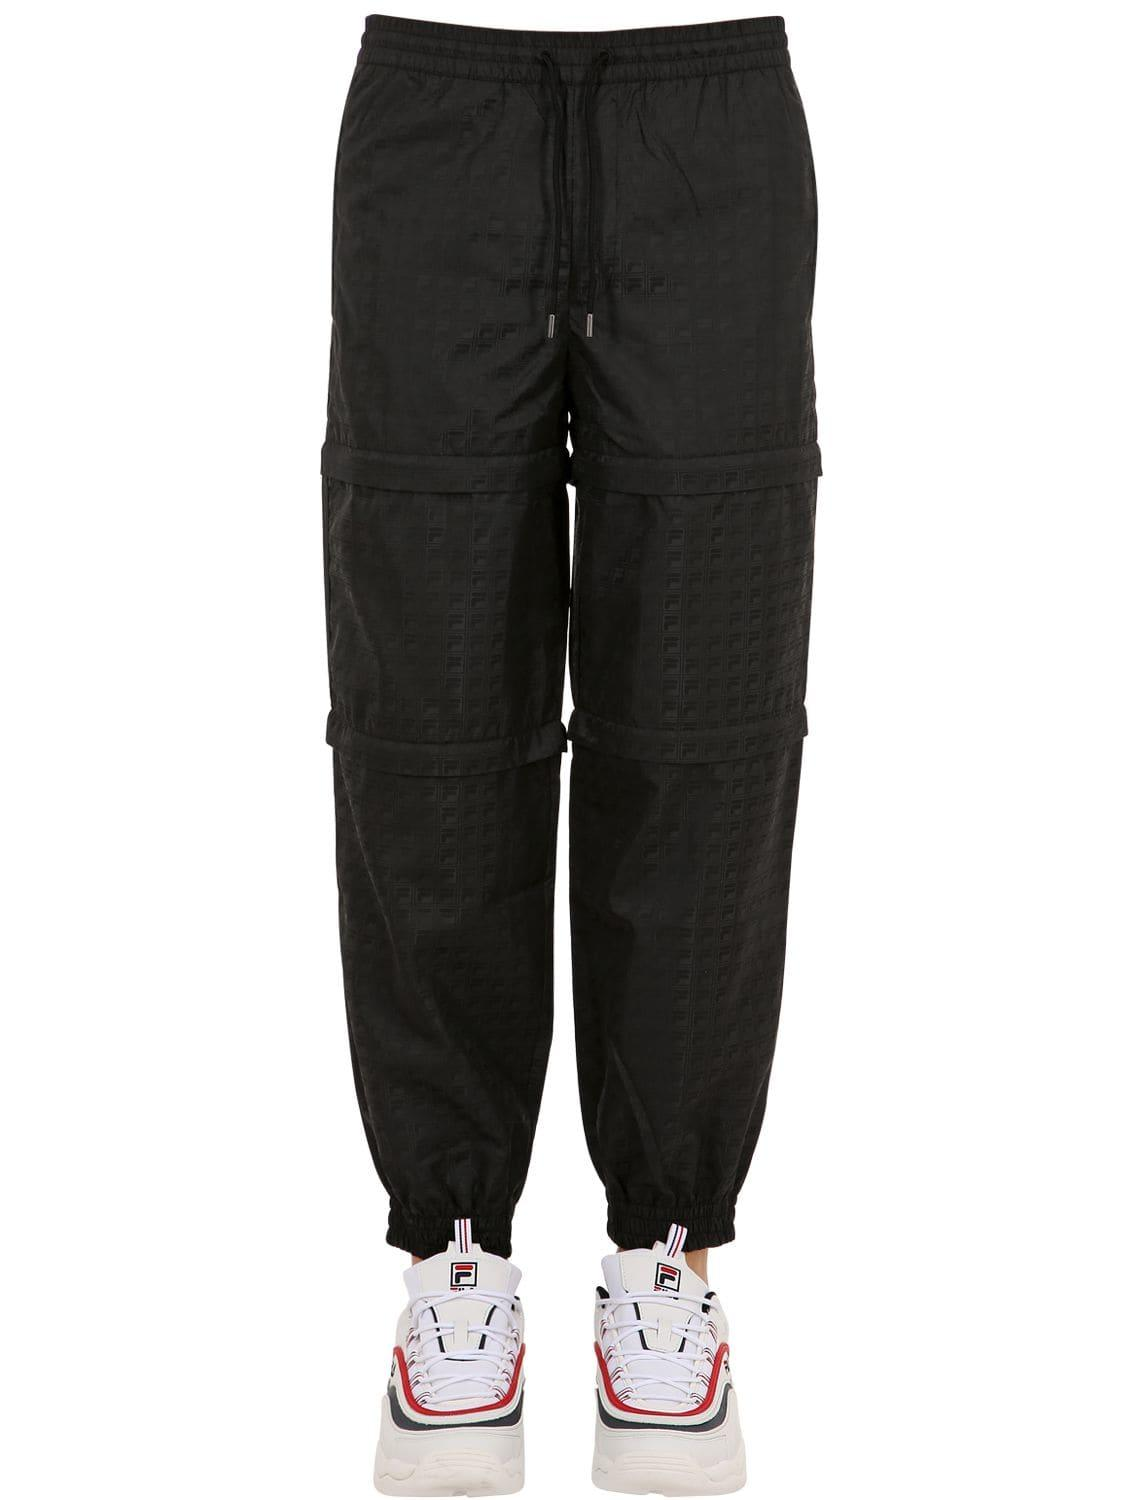 0c0d2259a8fcc Lyst - Fila Layered Panel Woven Pants in Black for Men